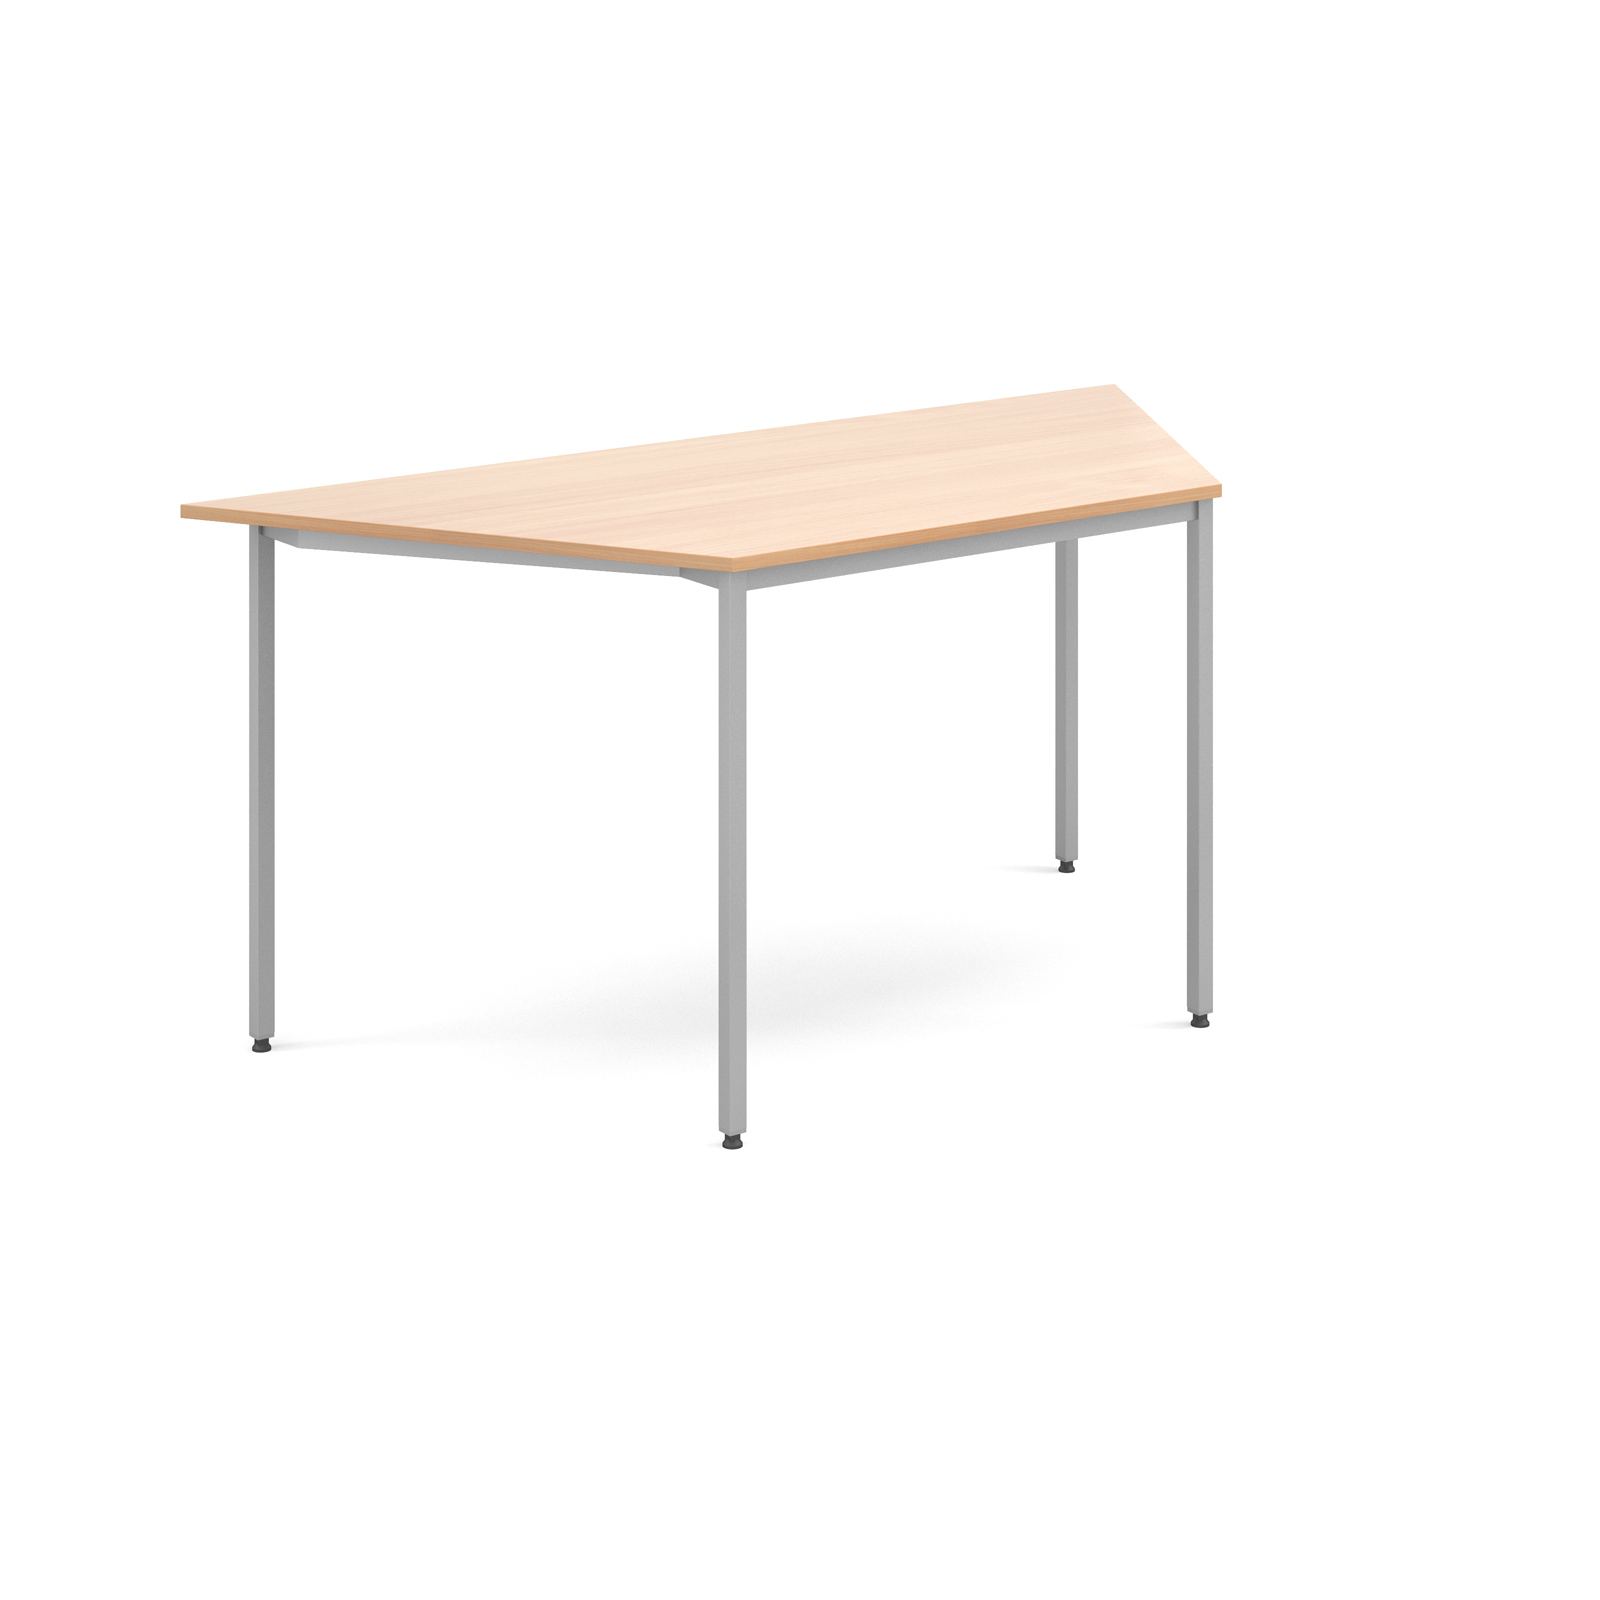 Trapezoidal flexi table with silver frame